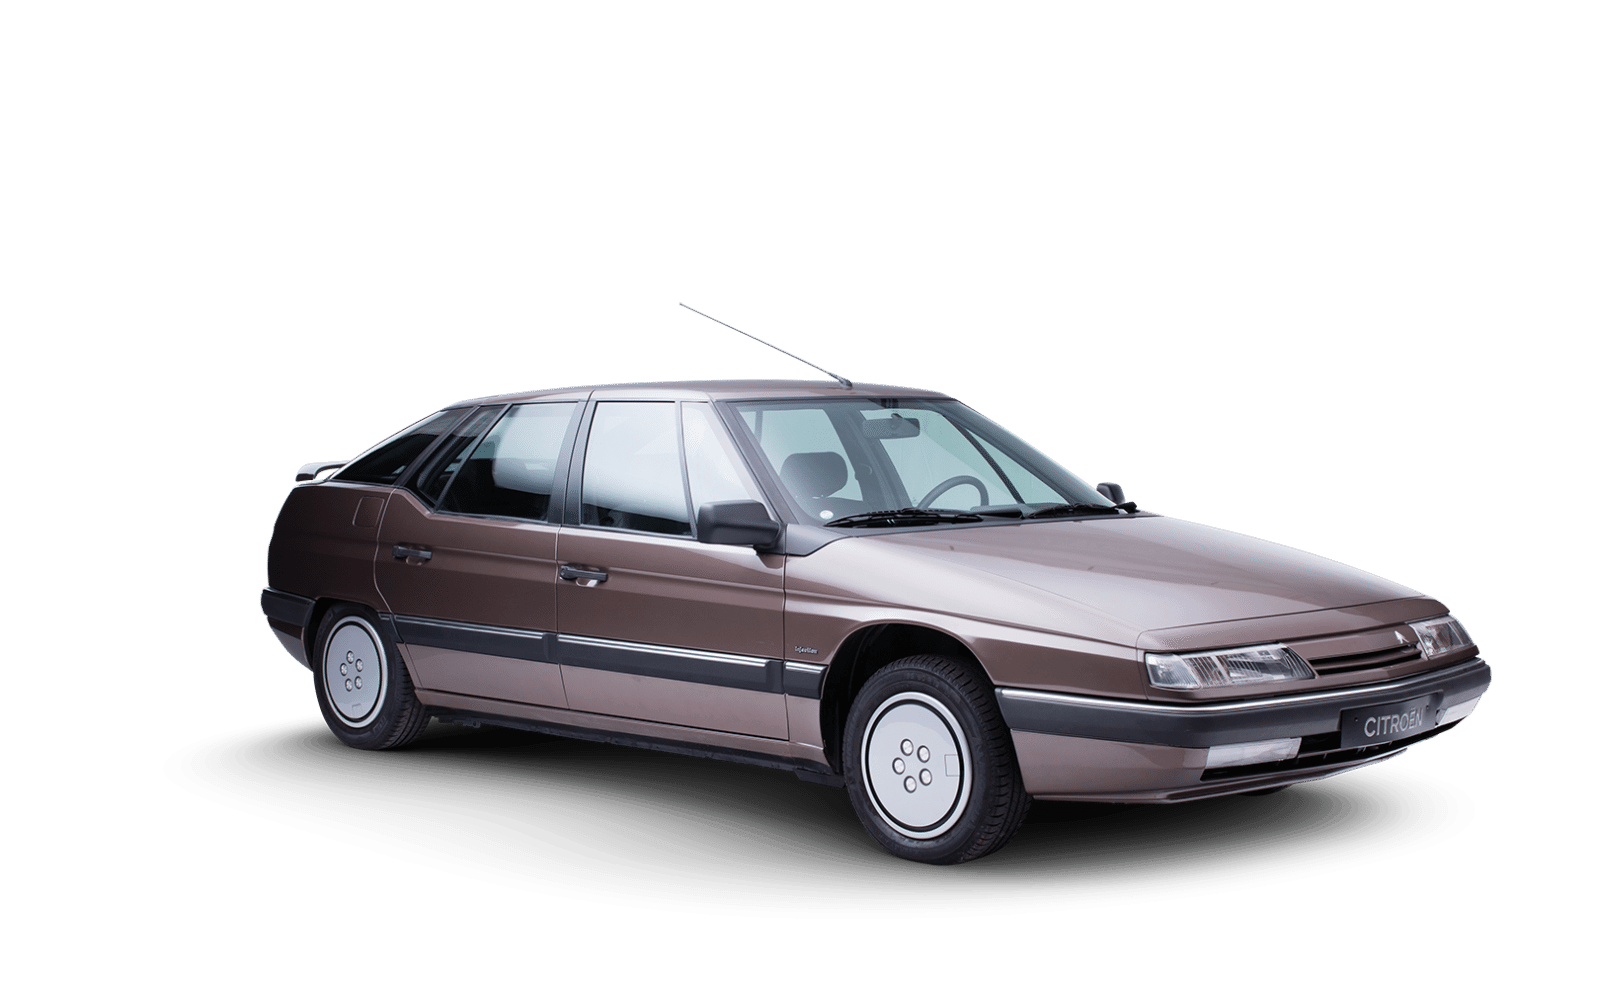 Citroën XM  Photos, details and equipment  Citroën Origins